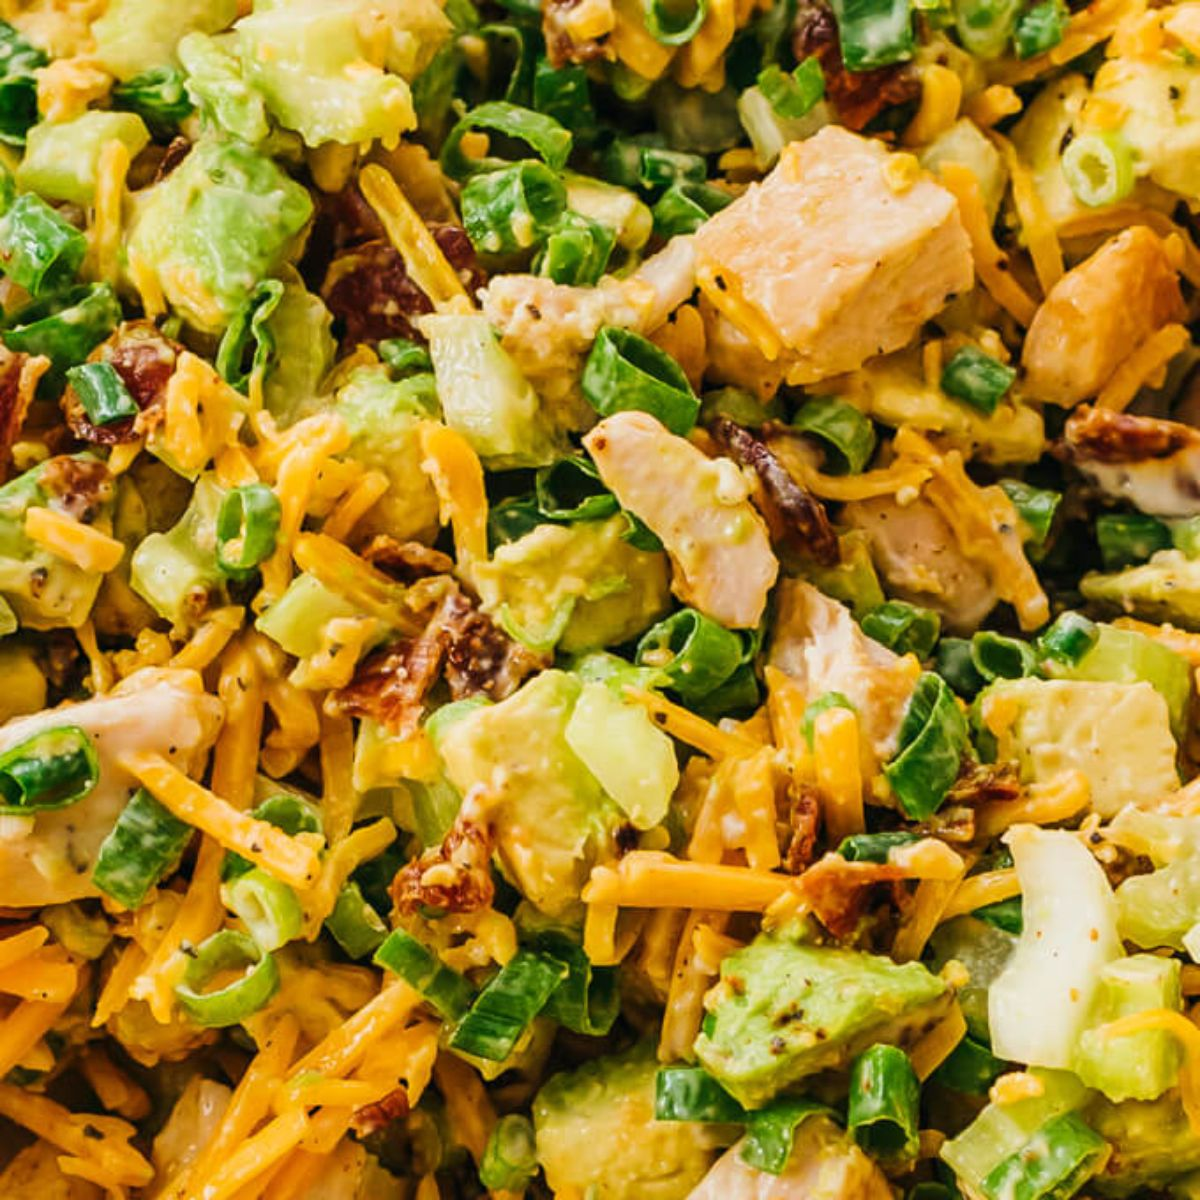 A close up of a creamy salad with shredded cheese, chicken, avocado and scallions